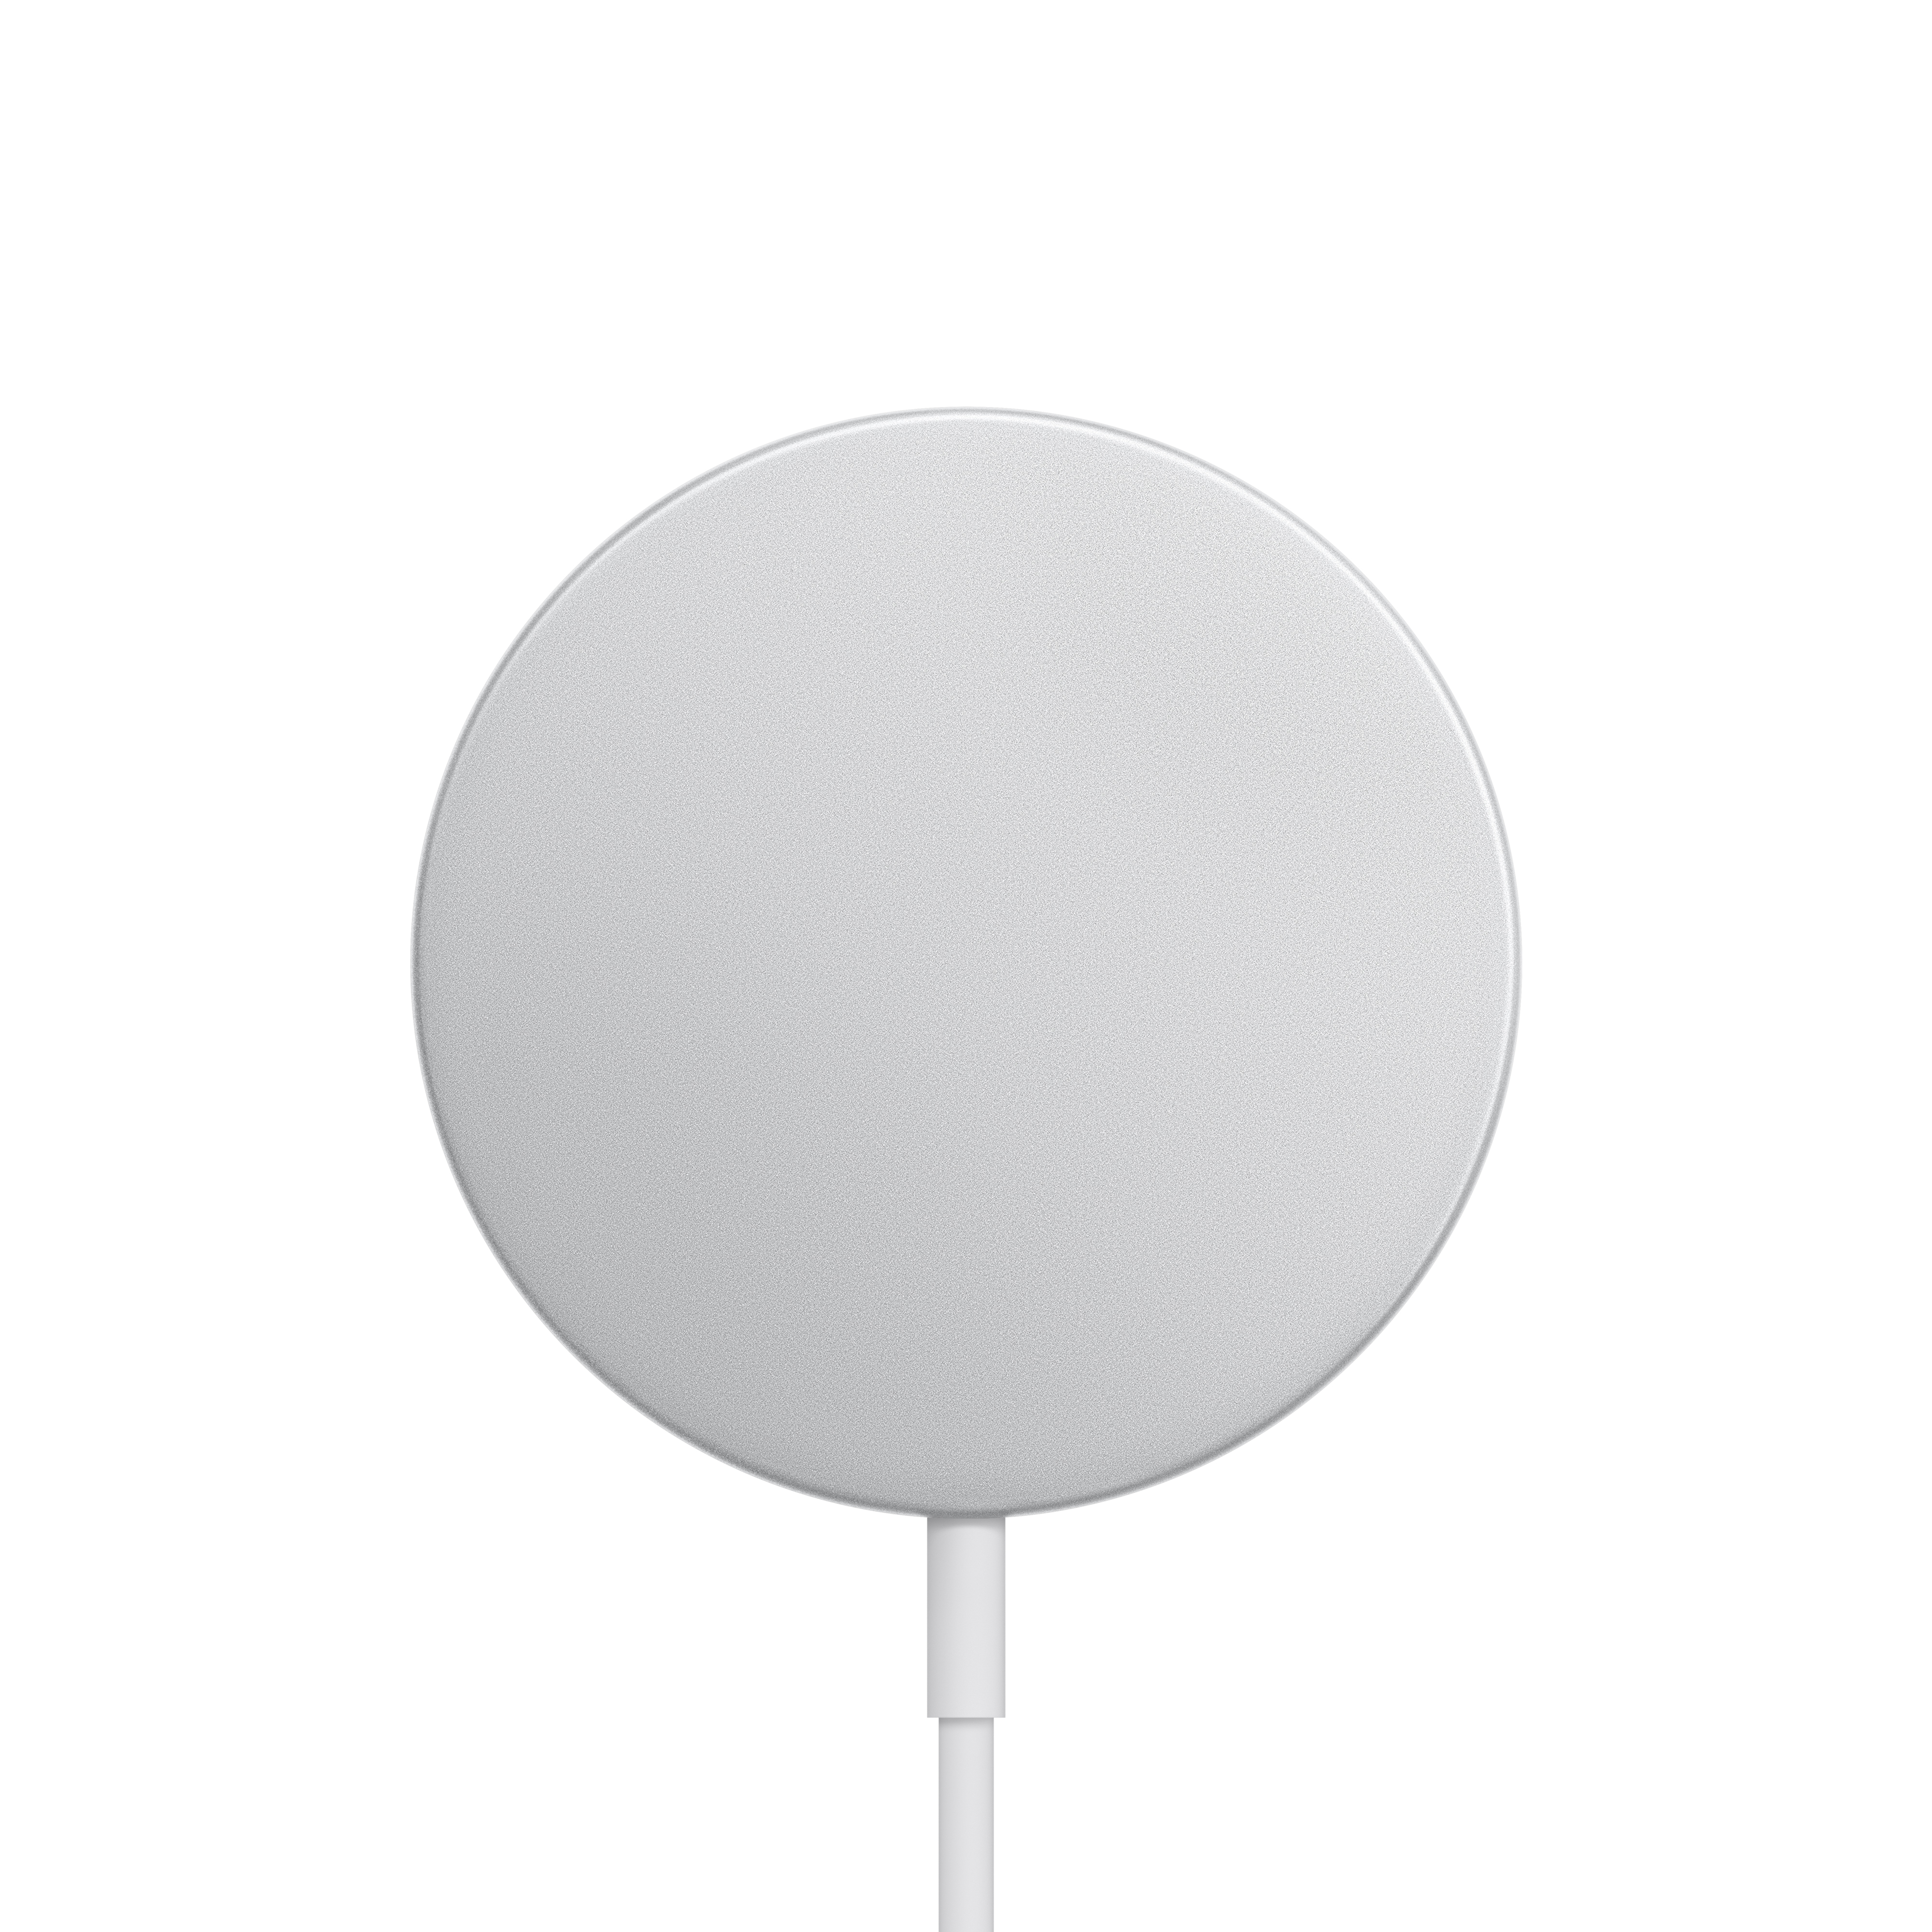 - Apple MagSafe Charger